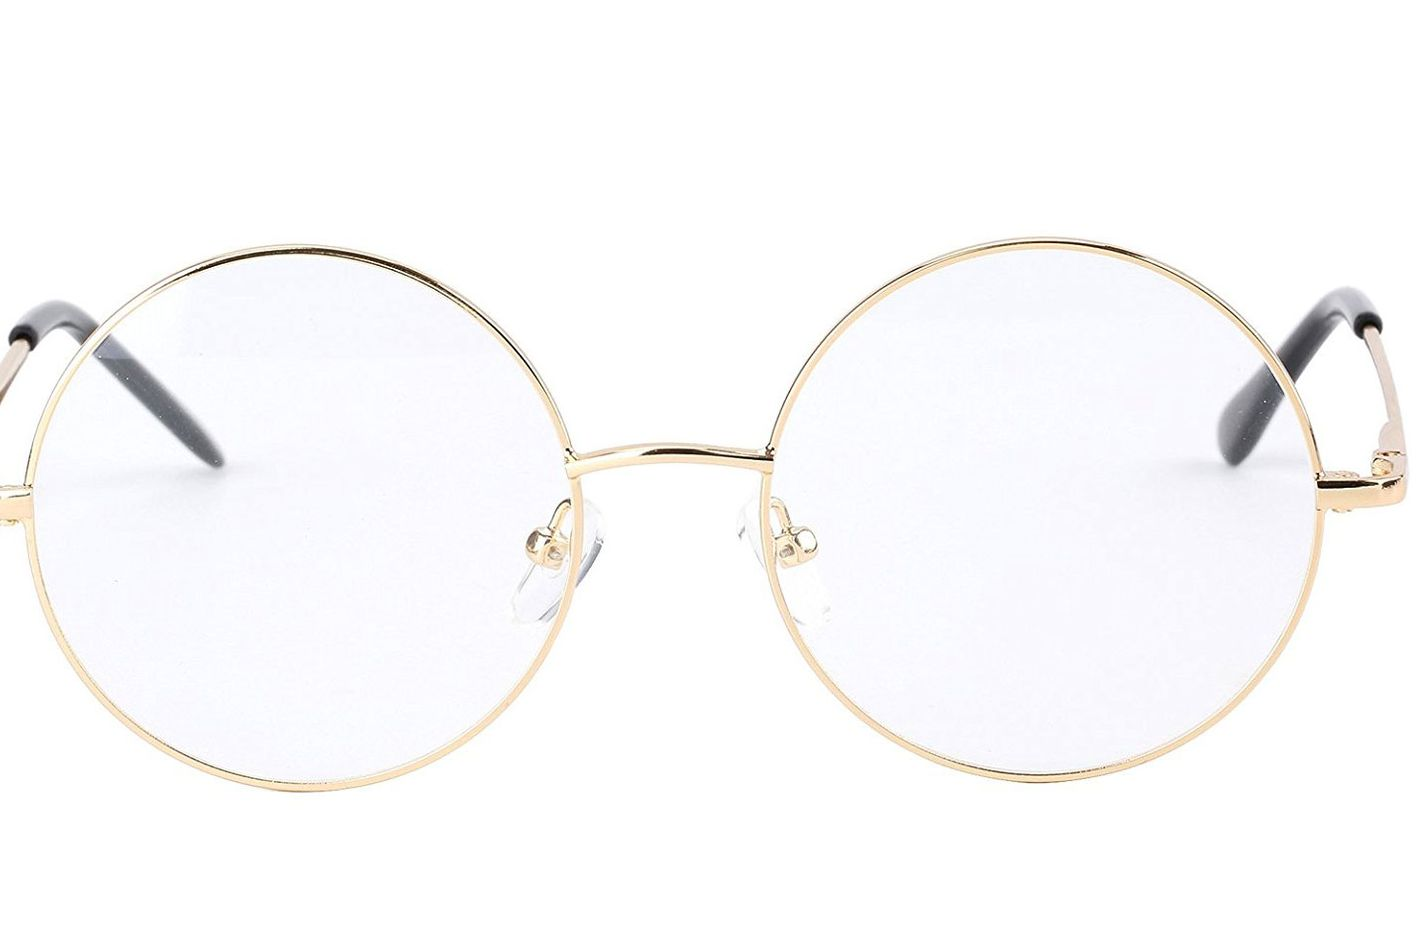 The Best Wire-Frame Circle Glasses According to Editors